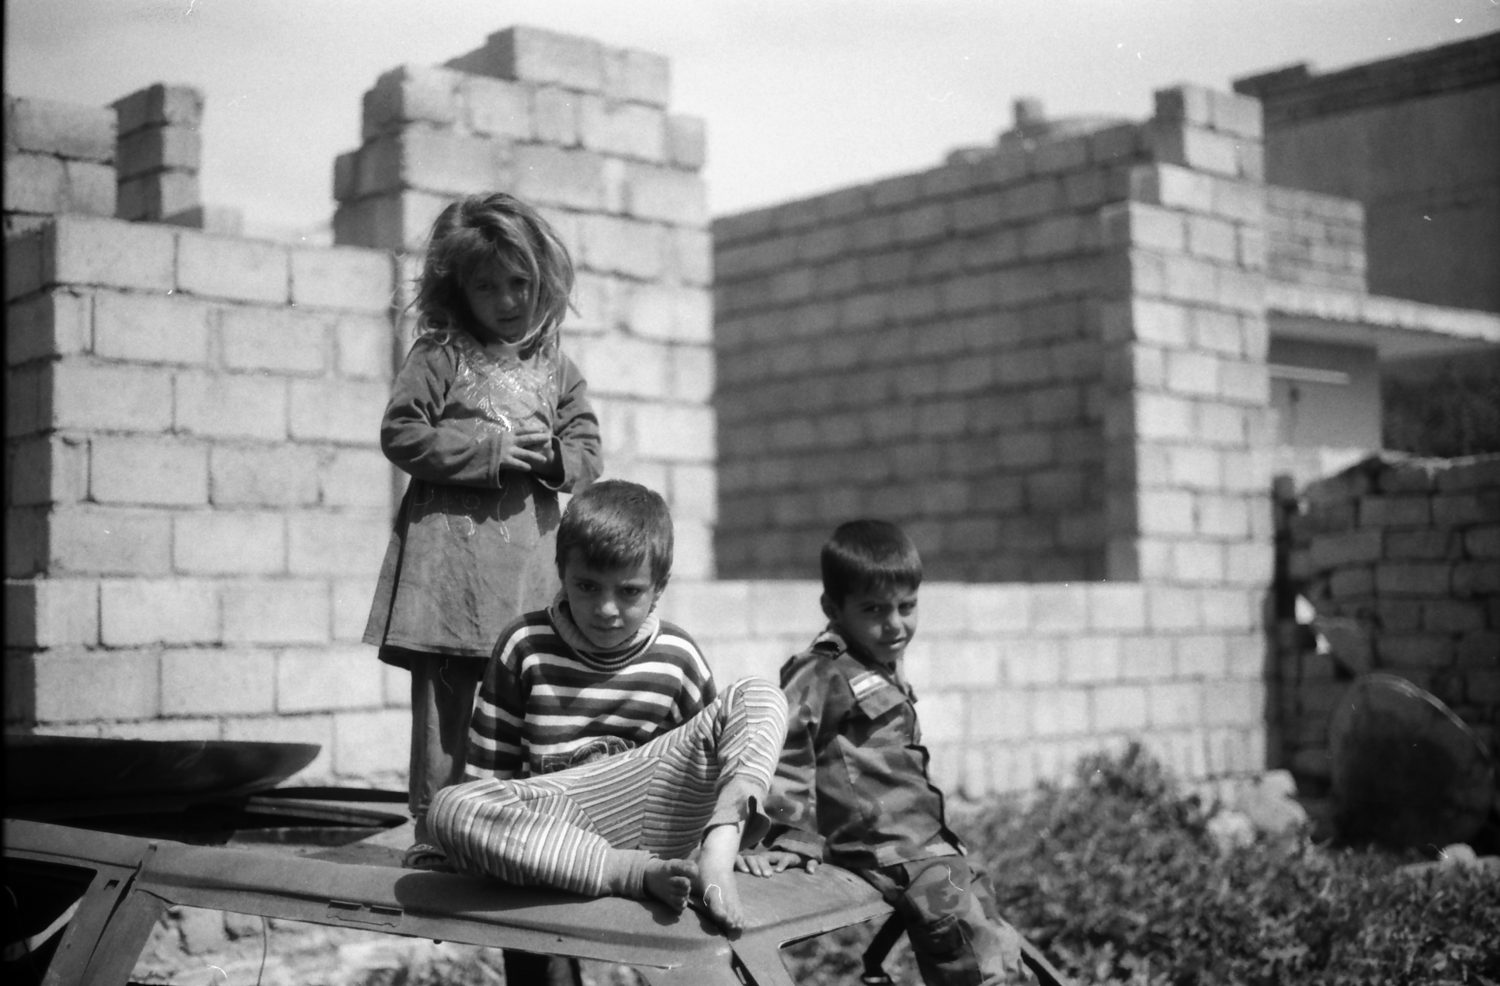 Children playing in ruined house